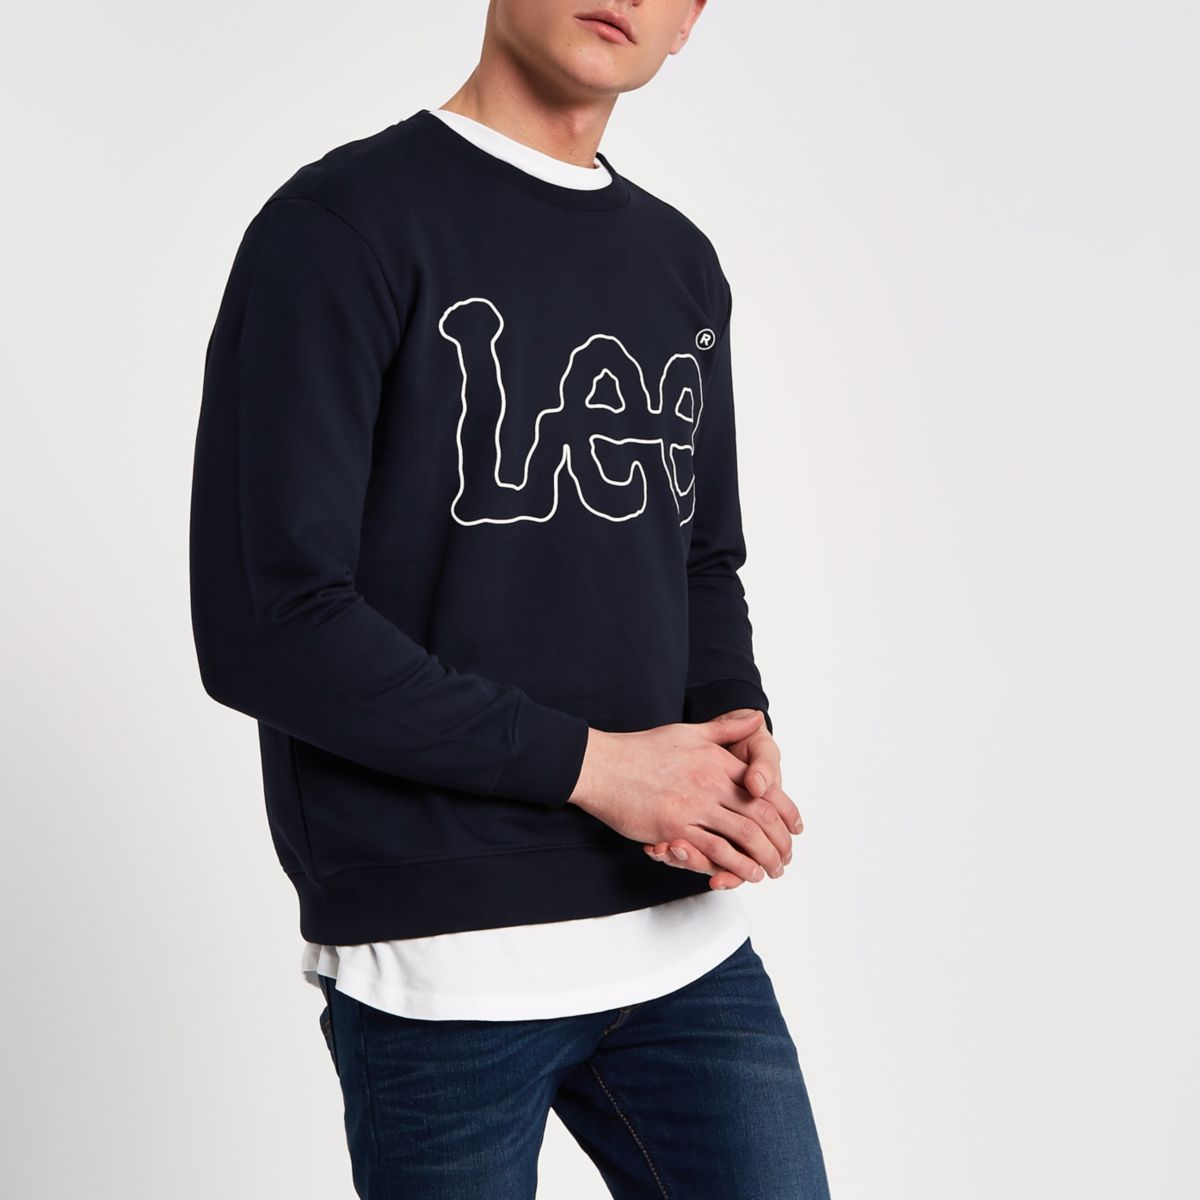 Lee navy logo print crew neck sweatshirt